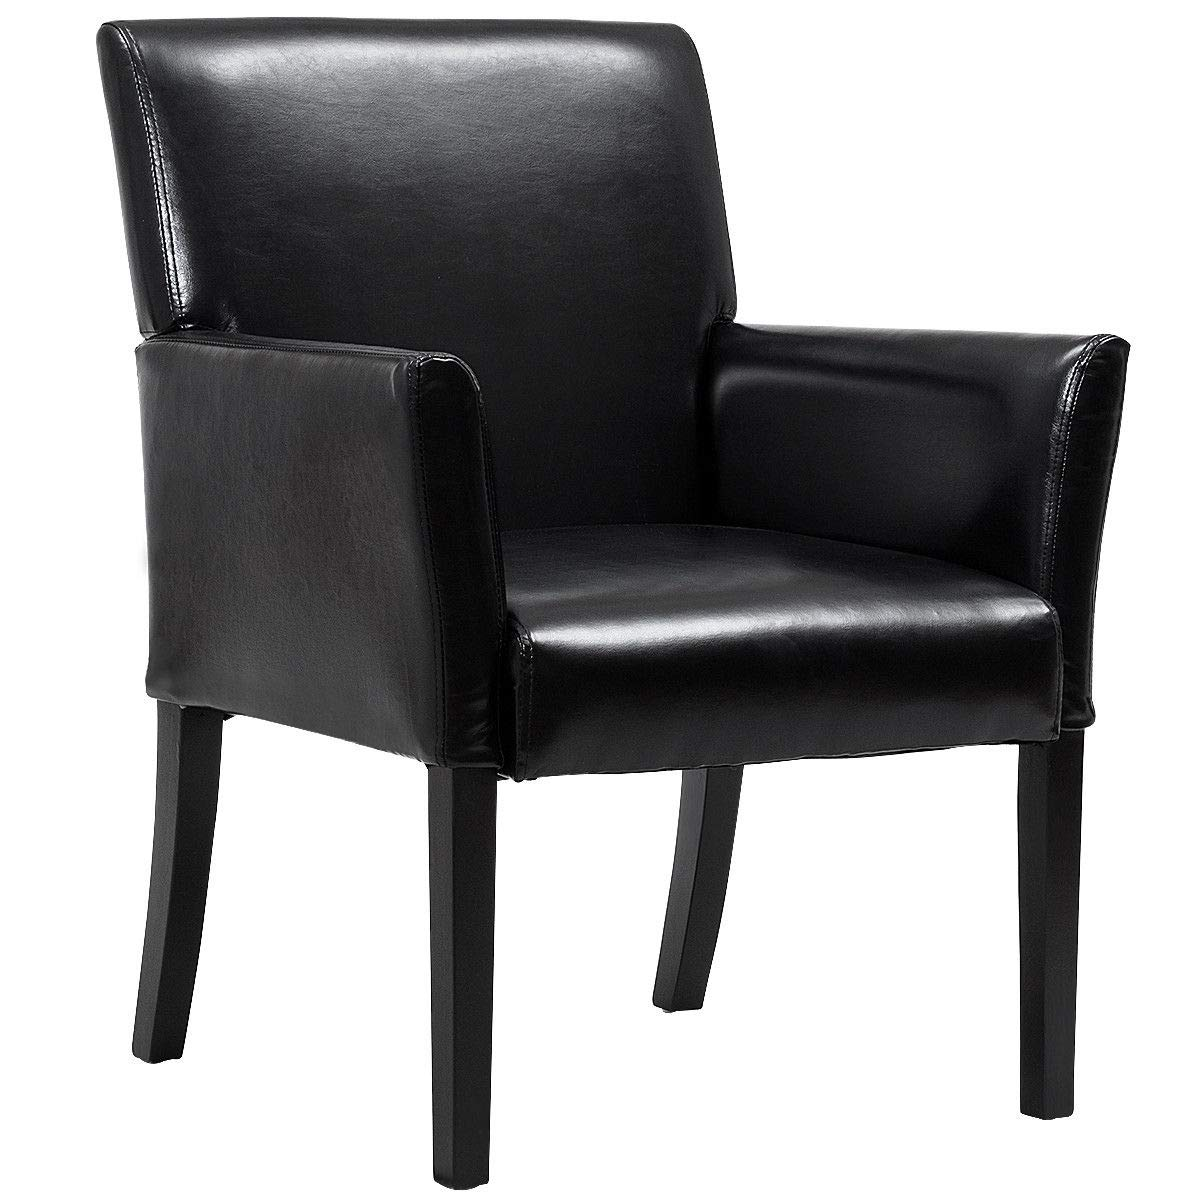 Giantex Leather Reception Guest Chairs W/Padded Seat and Arms Ergonomic  Mid-Back Office Executive Side Chair for Meeting Waiting Room Conference